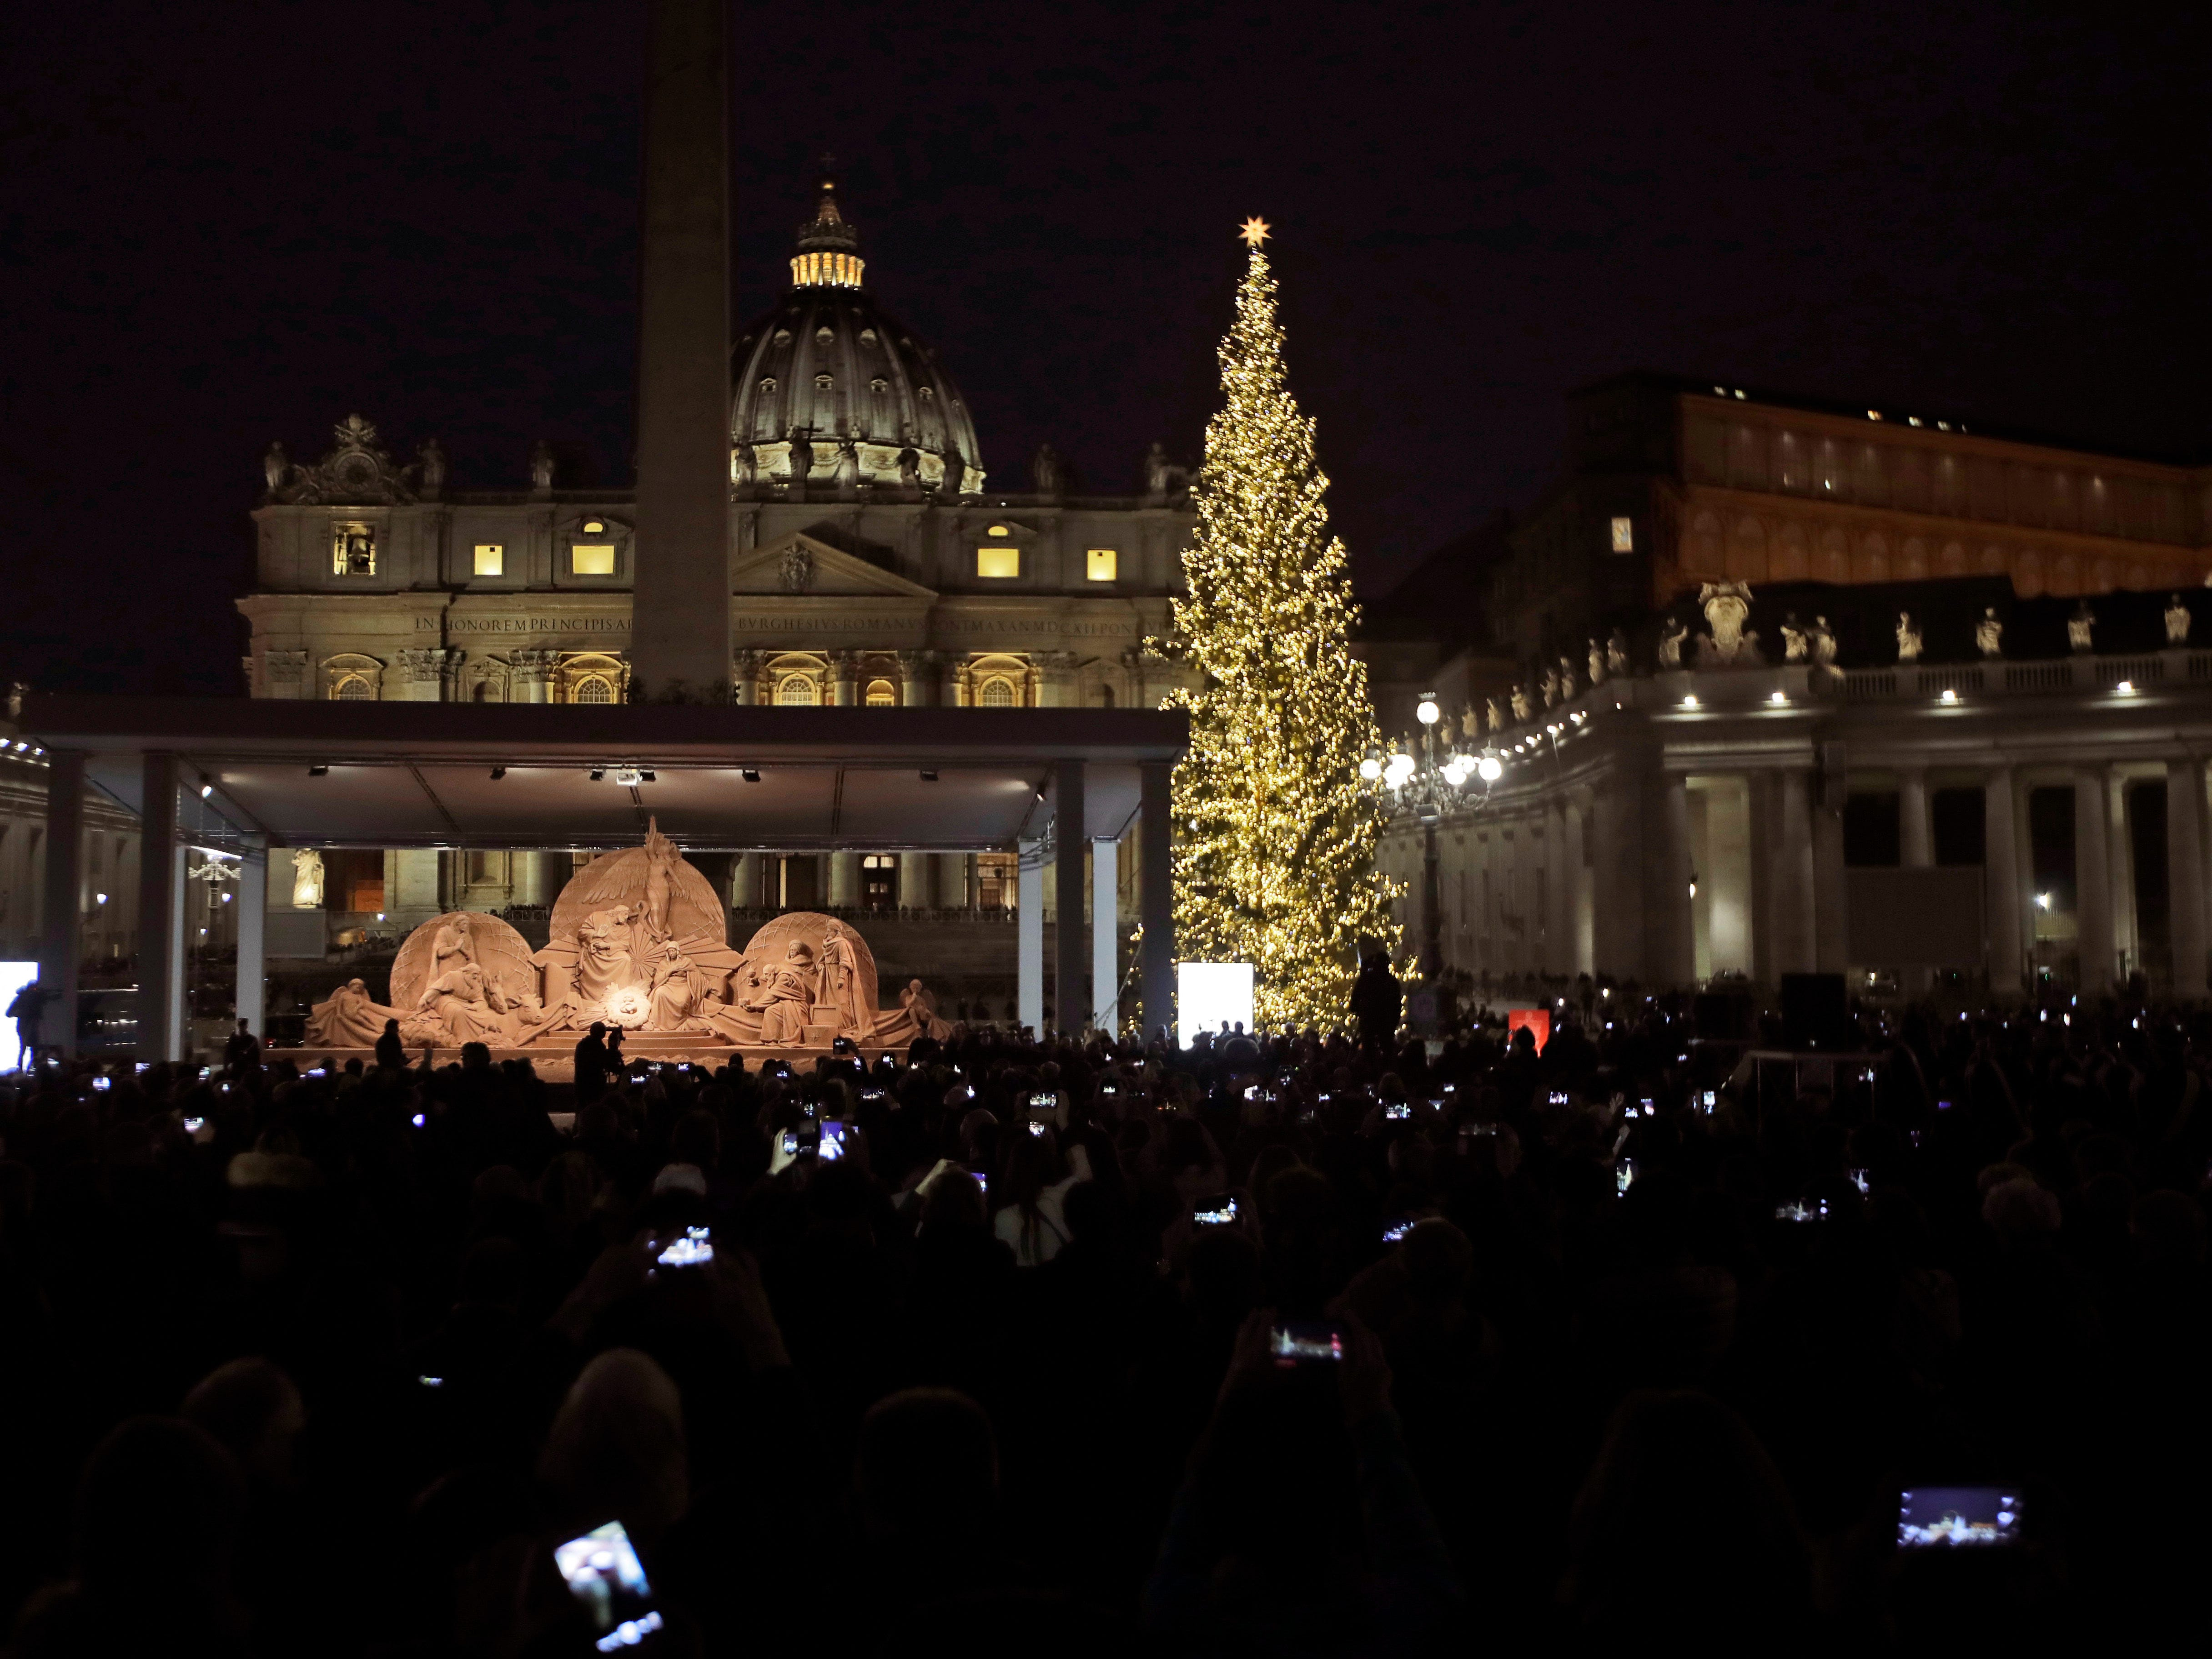 A Nativity scene and a Christmas tree lights the foreground of St. Peter's Basilica during the official unveiling ceremony at the Vatican, Friday, Dec. 7, 2018. The Nativity scene was sculpted from about 700 tons of sand, and serves as the centerpiece of the Vatican's Christmastime decorations along with the giant tree.